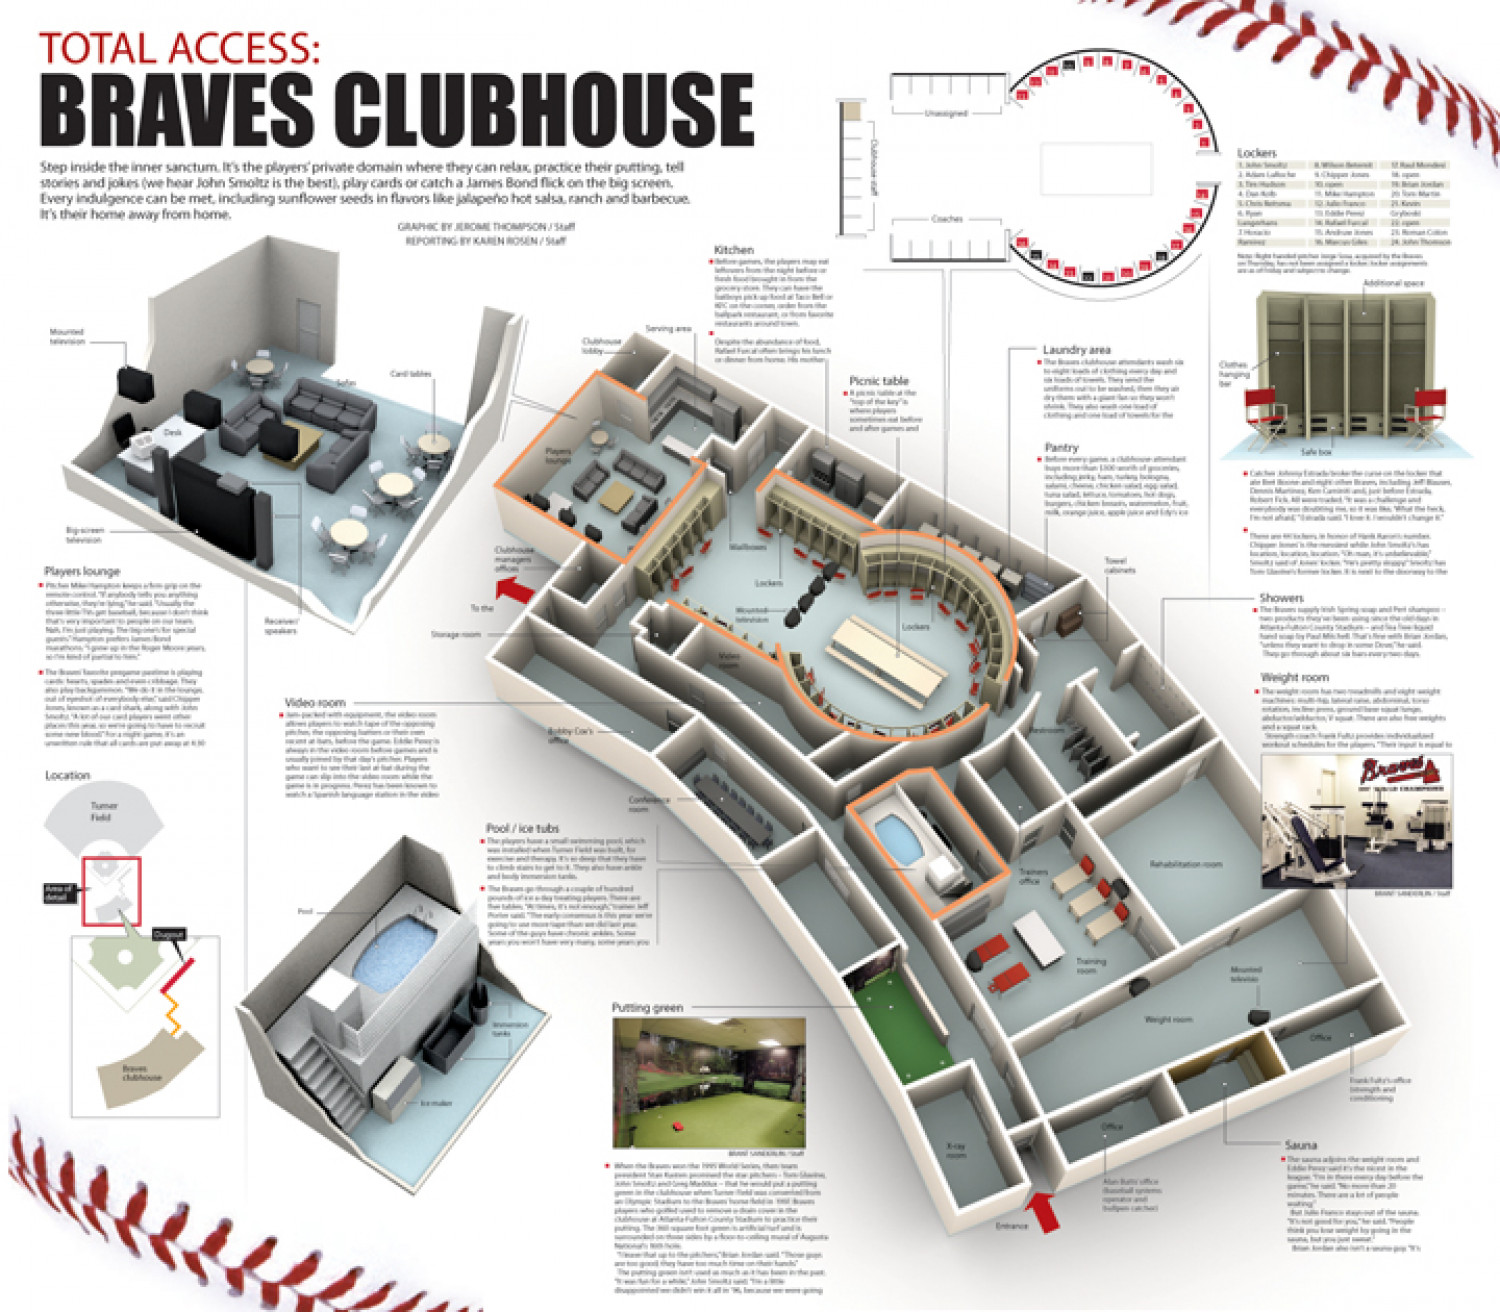 Total Access: Braves Clubhouse Infographic